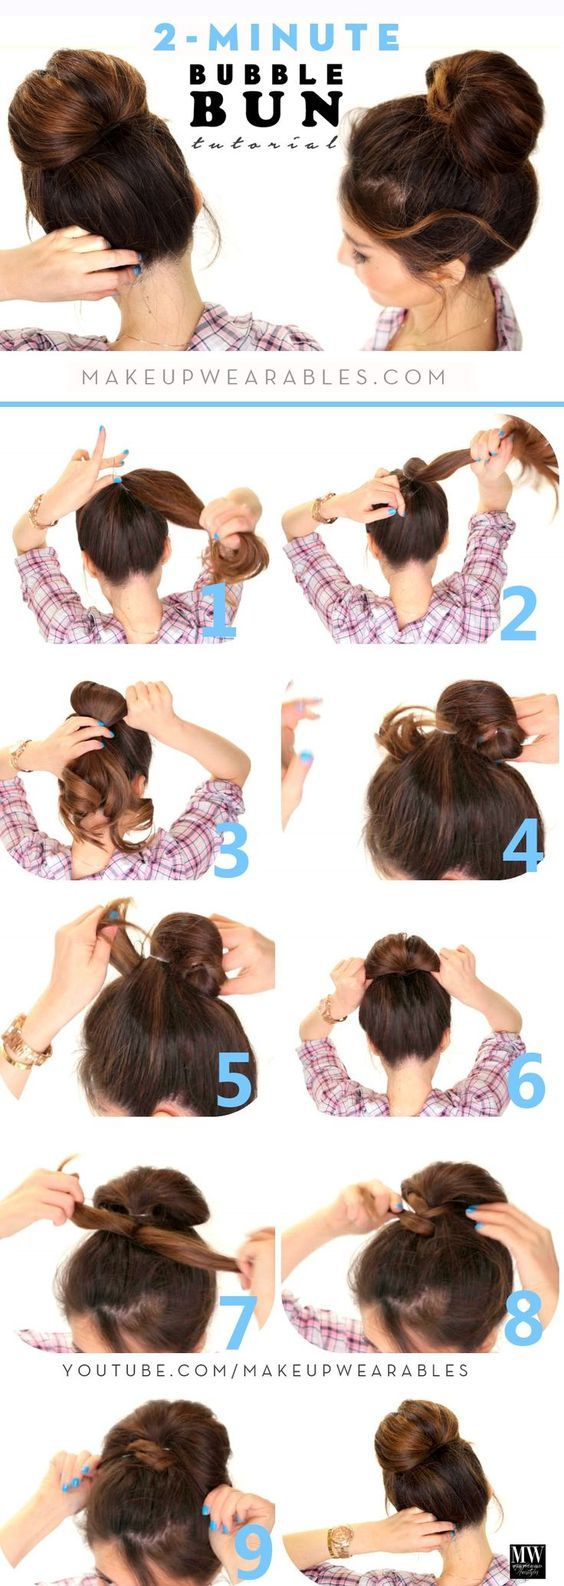 DIY Women's Hairstyles Bubble Bun